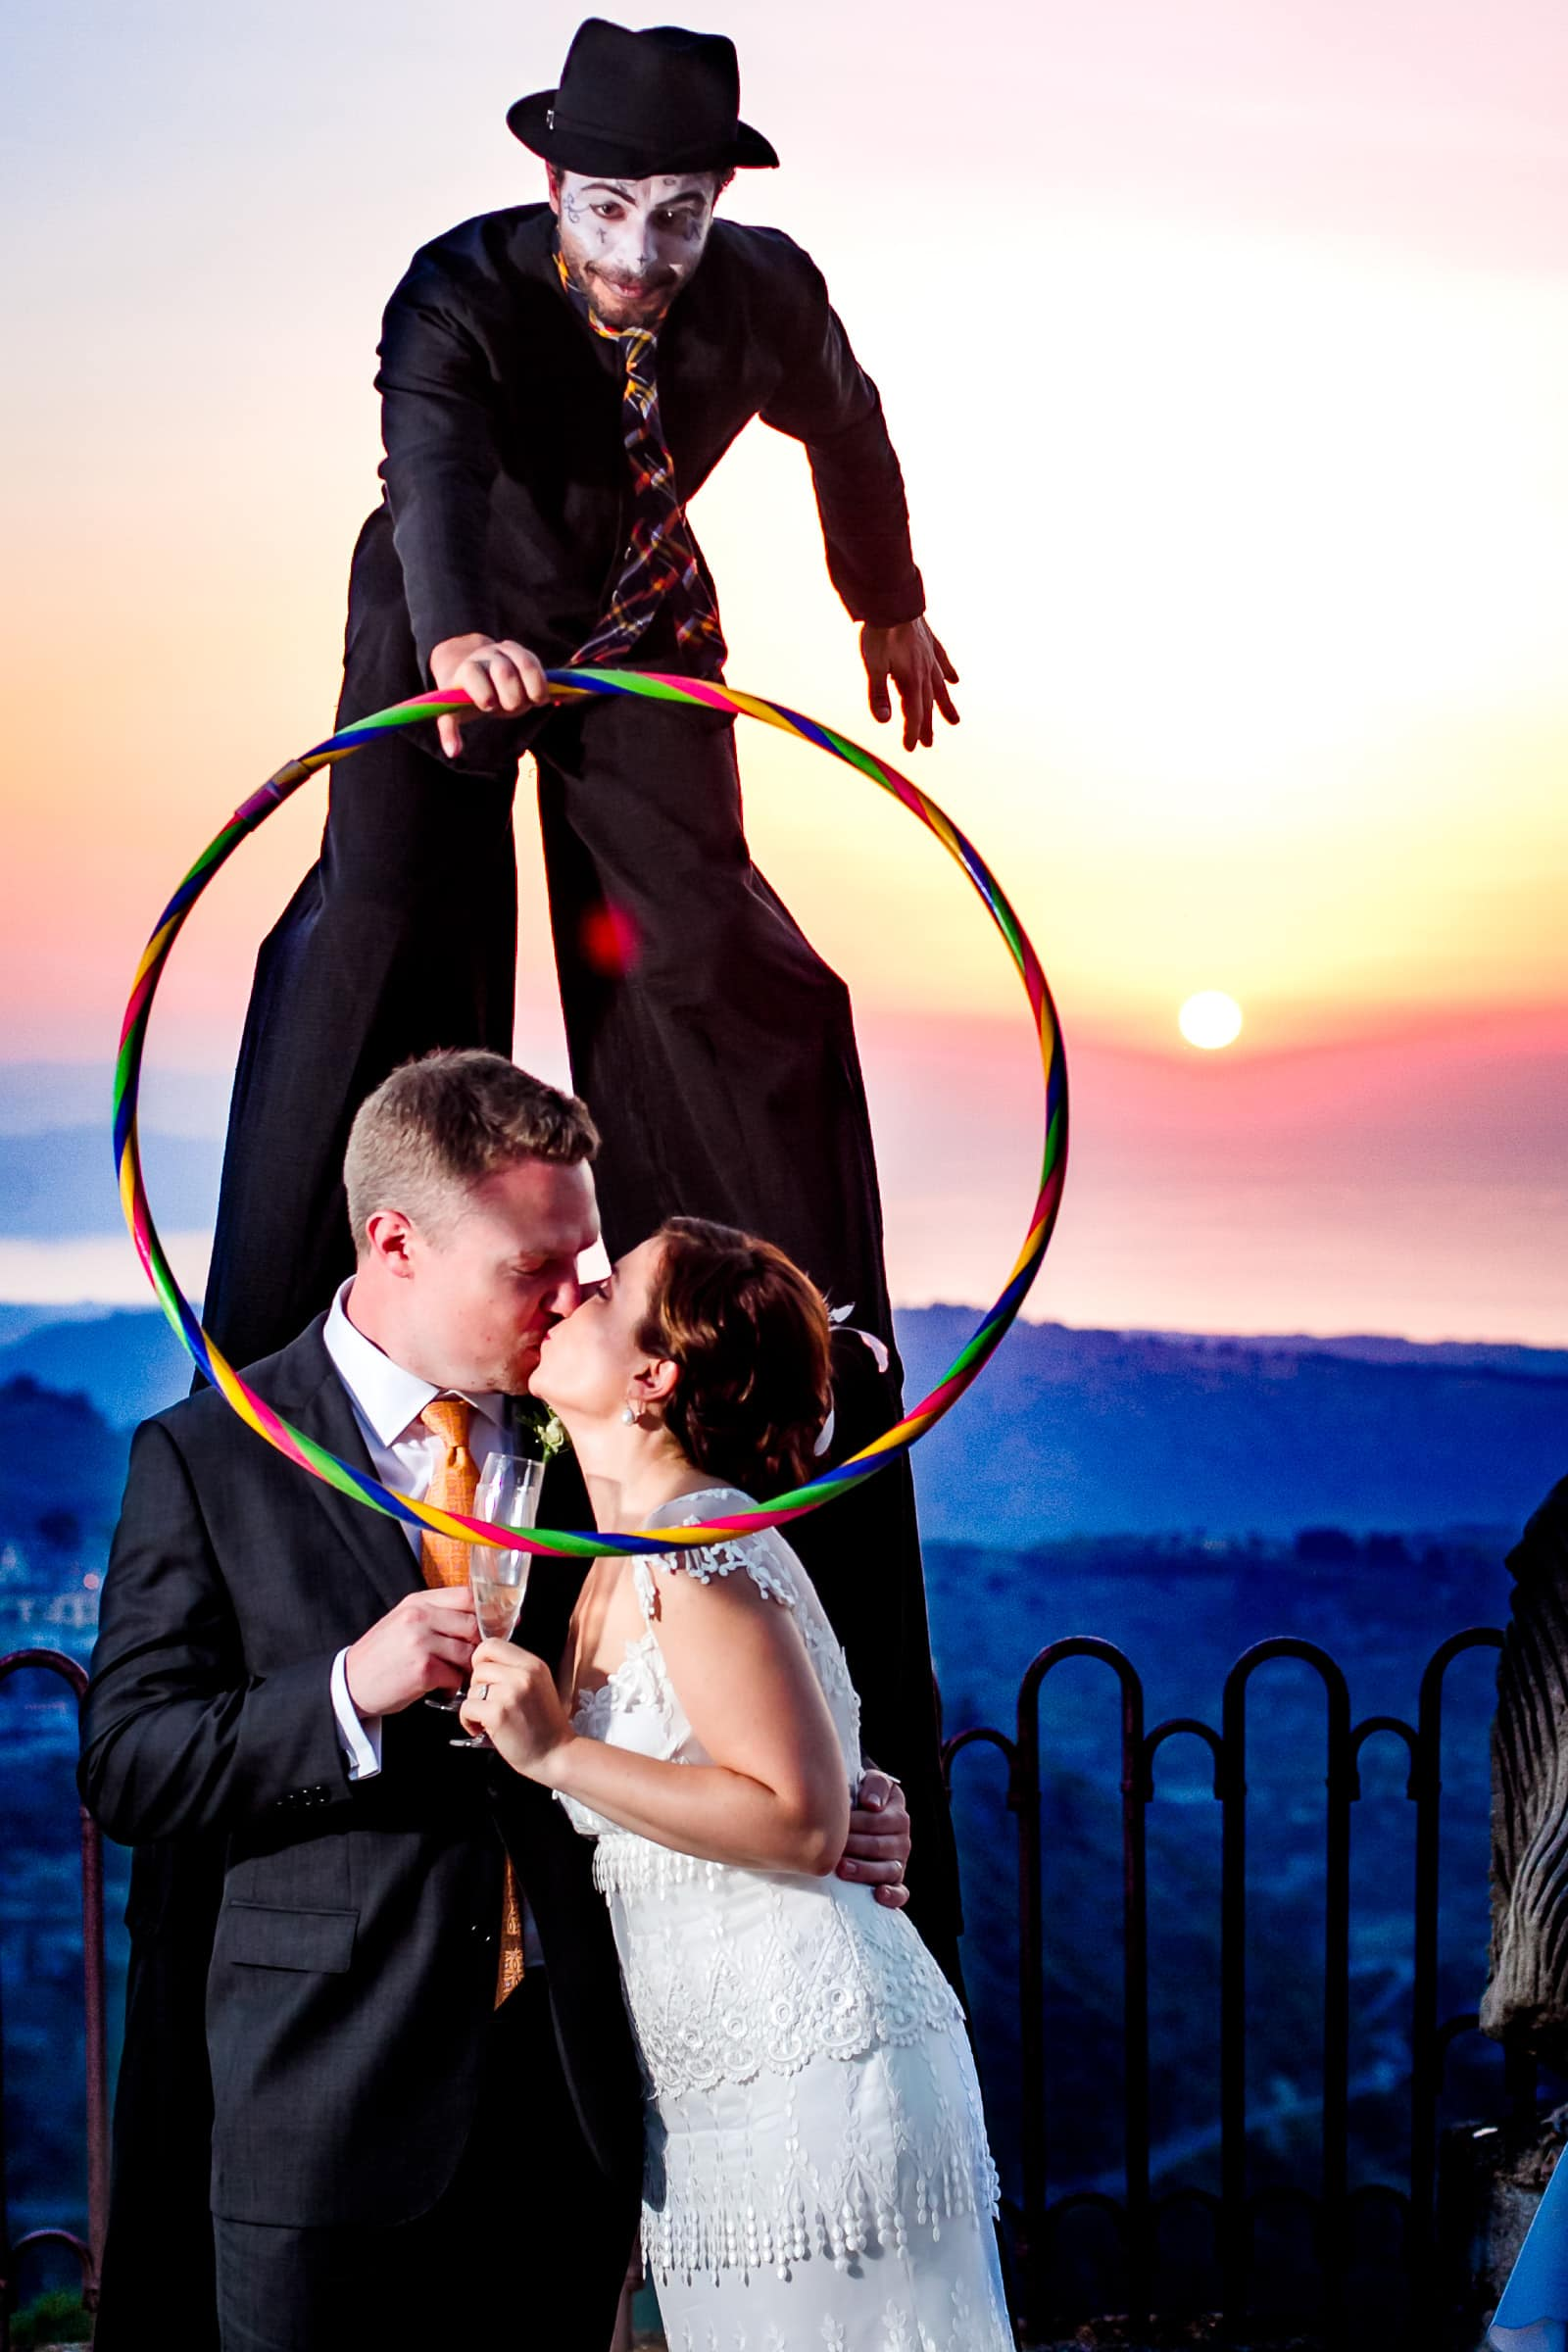 Bride and groom comically greeted by a circus clown on stilts during their Sicily Wedding reception for a sunset potrait